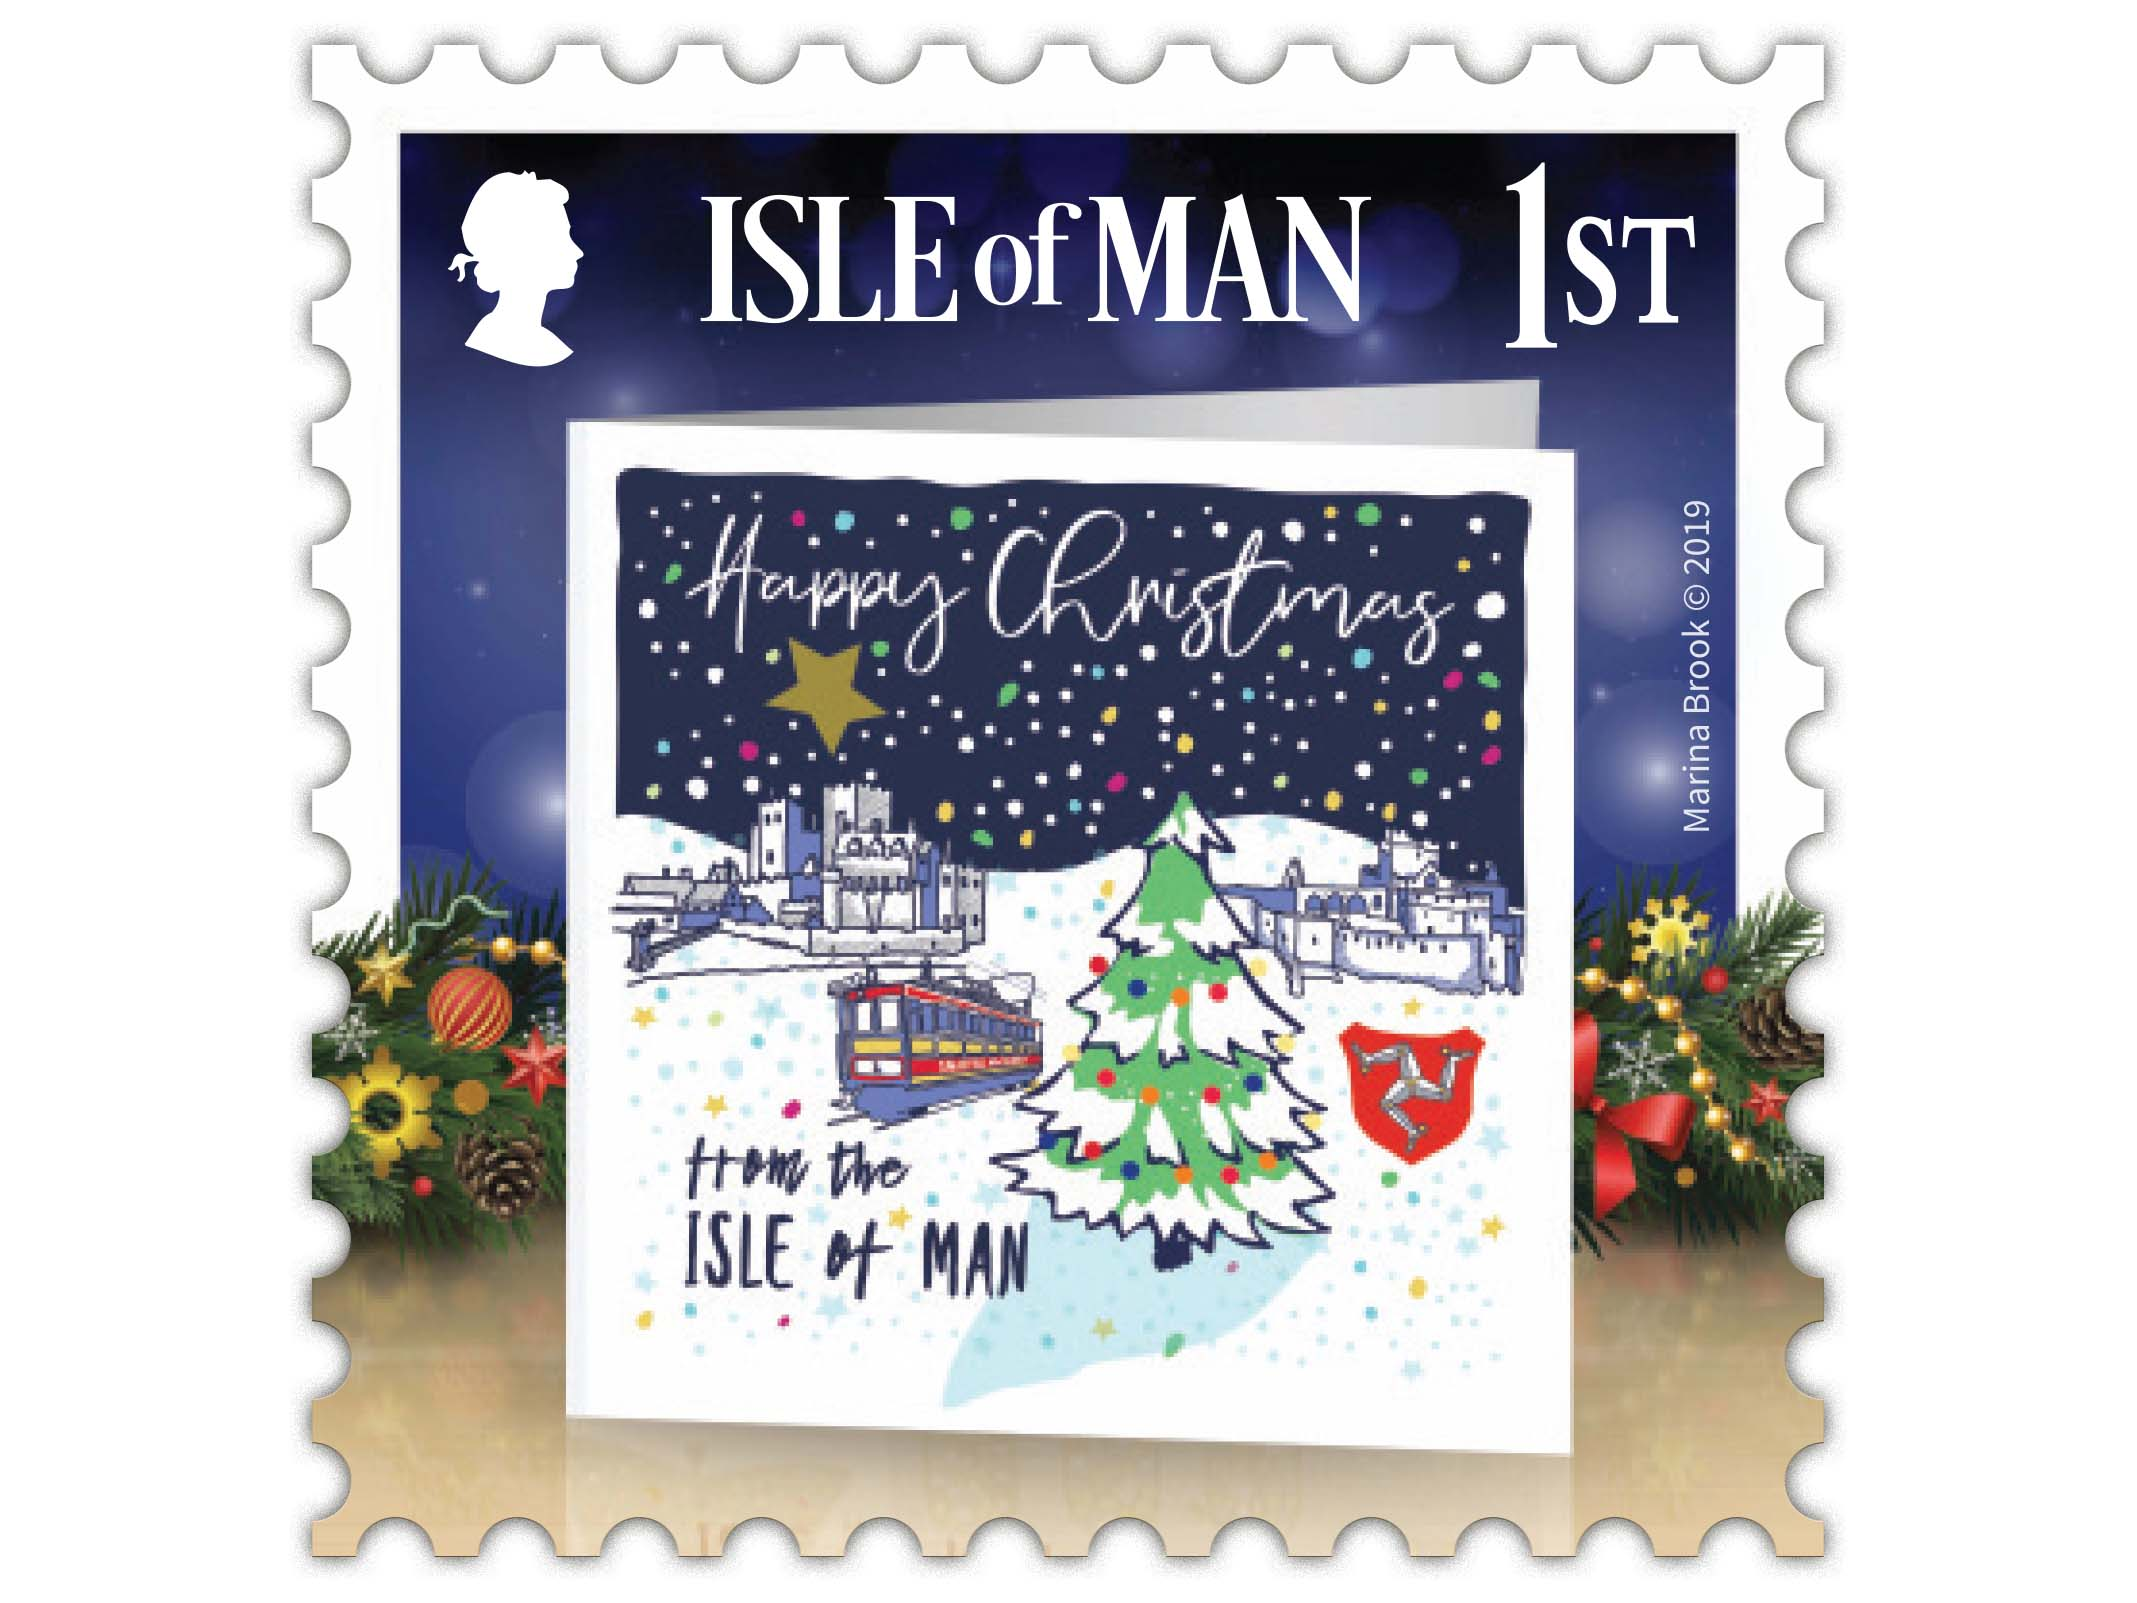 Above: While, in keeping with the brief, the other stamps feature existing Christmas card designs, Marina Brook of Marina B Designs created this design specifically with an Isle of Man theme.